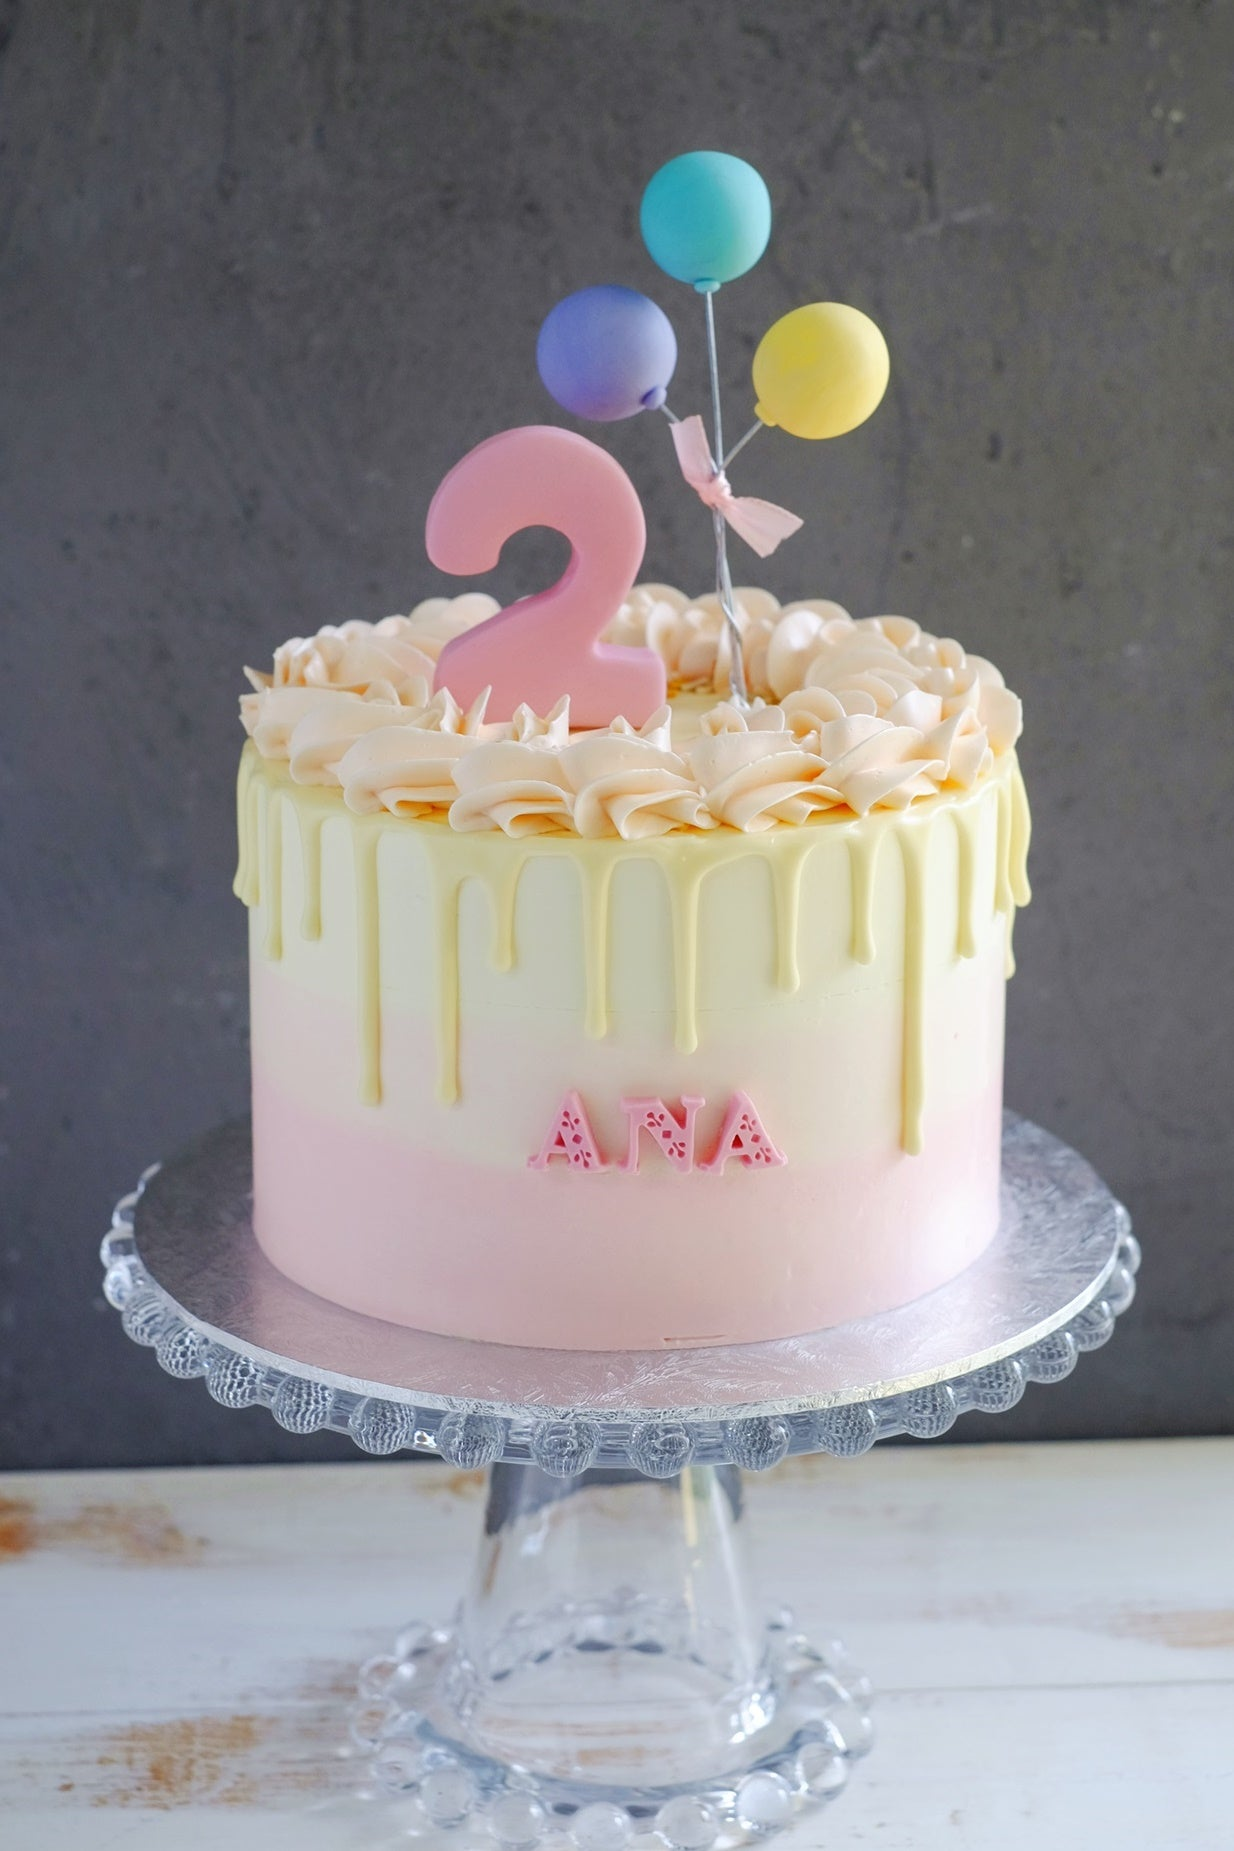 Ombre Cake with Fondant Balloons